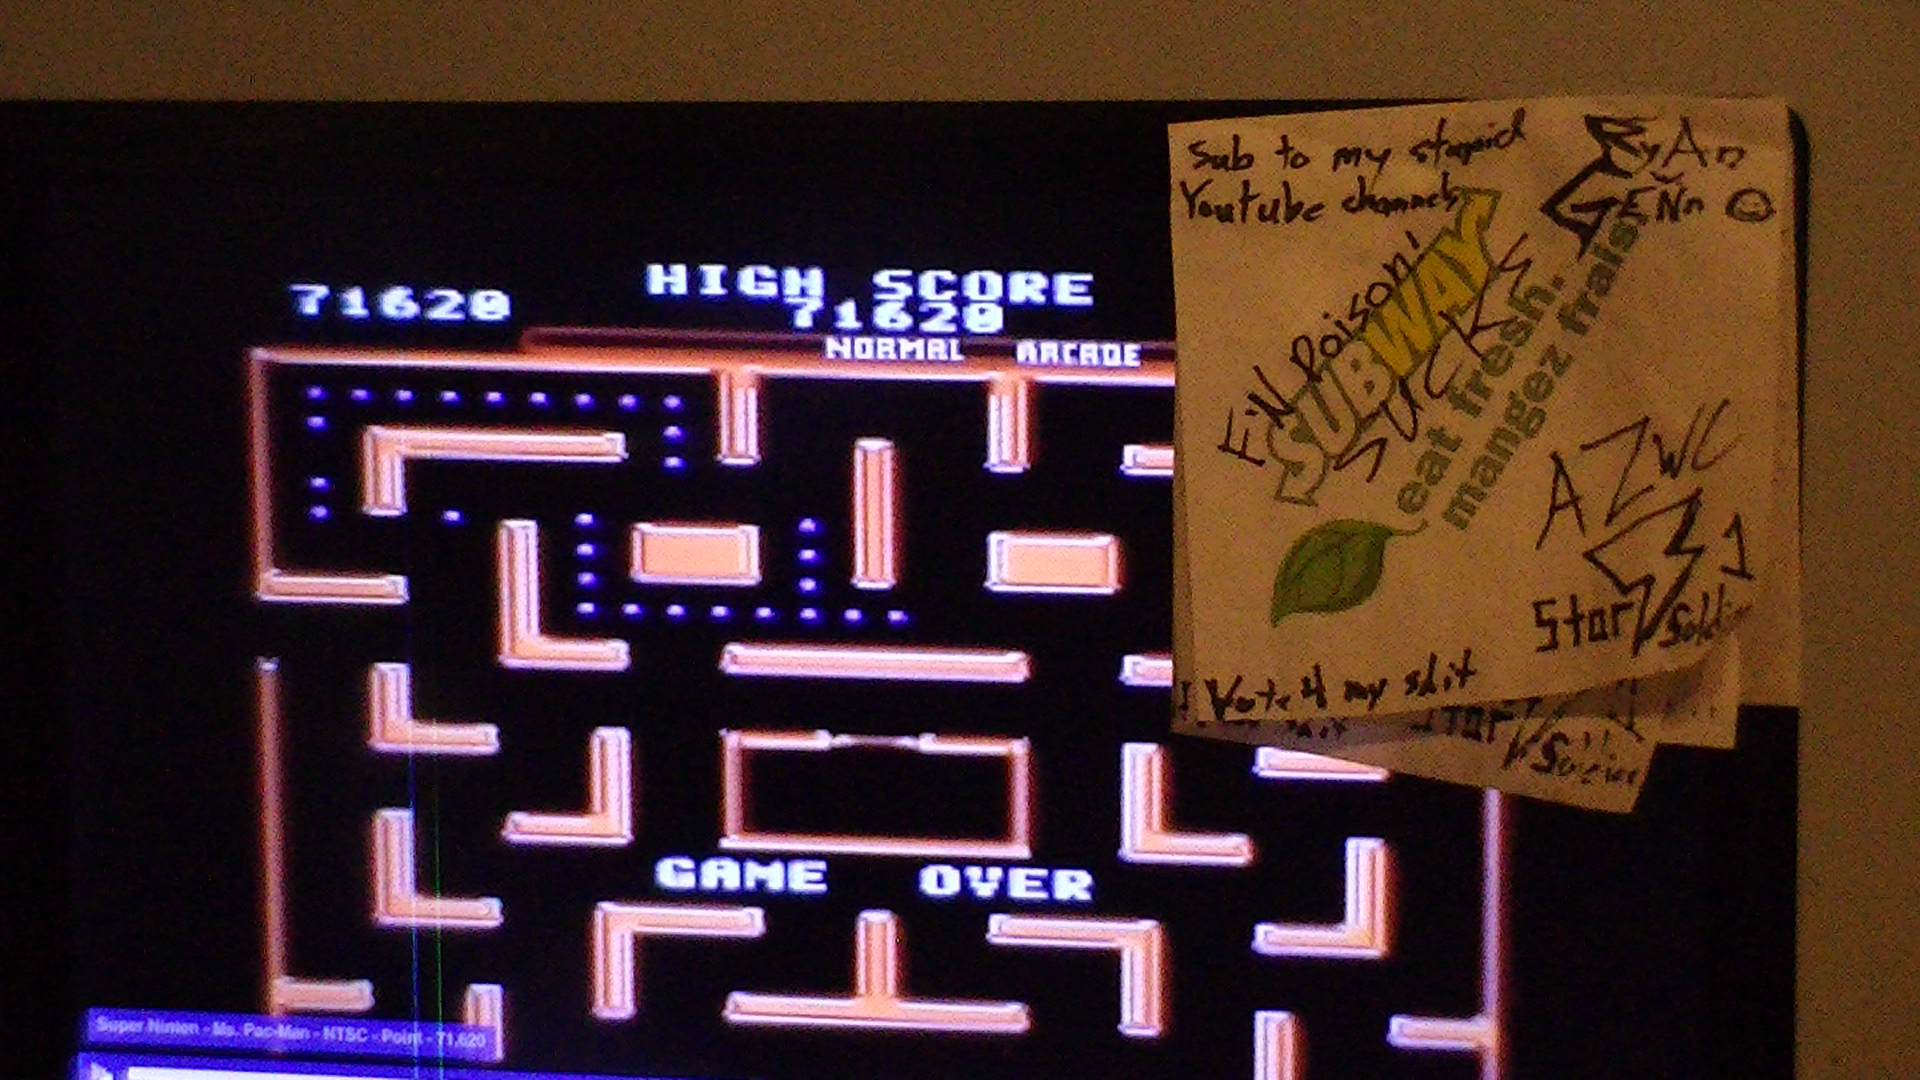 Ms. Pac-Man 71,620 points